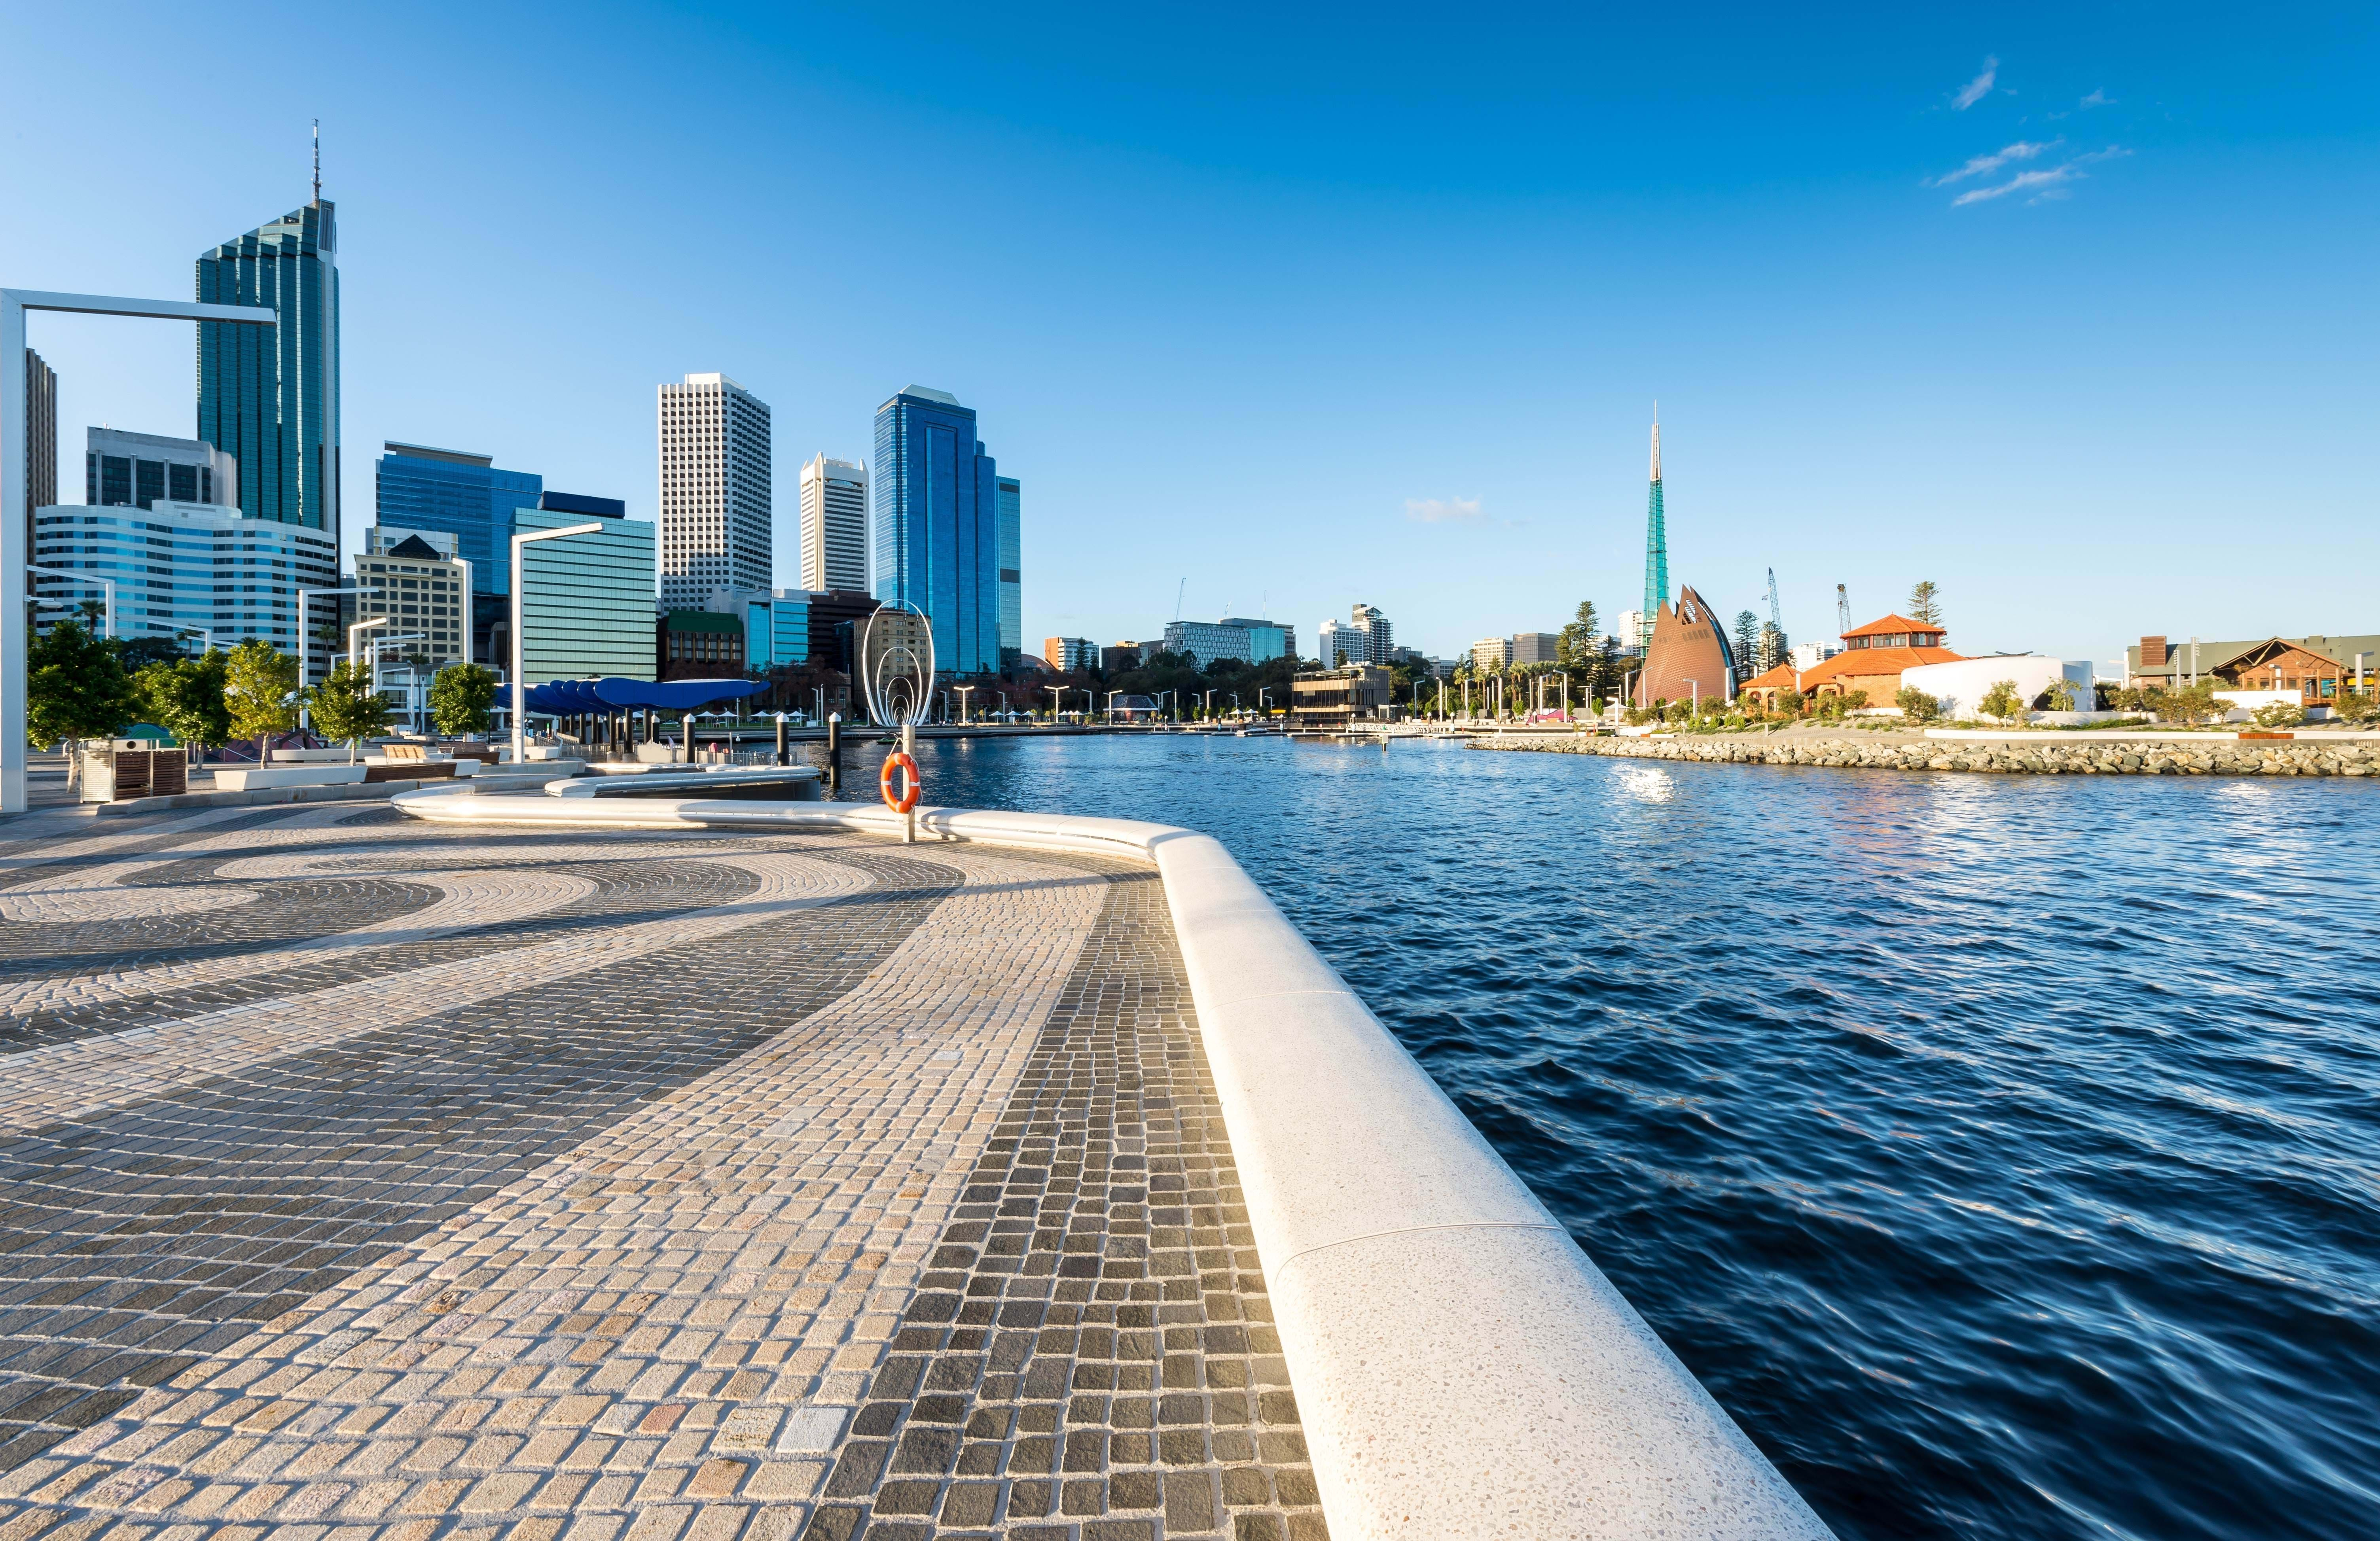 perth-elisabeth-quay-marina-australia-day-time-cover